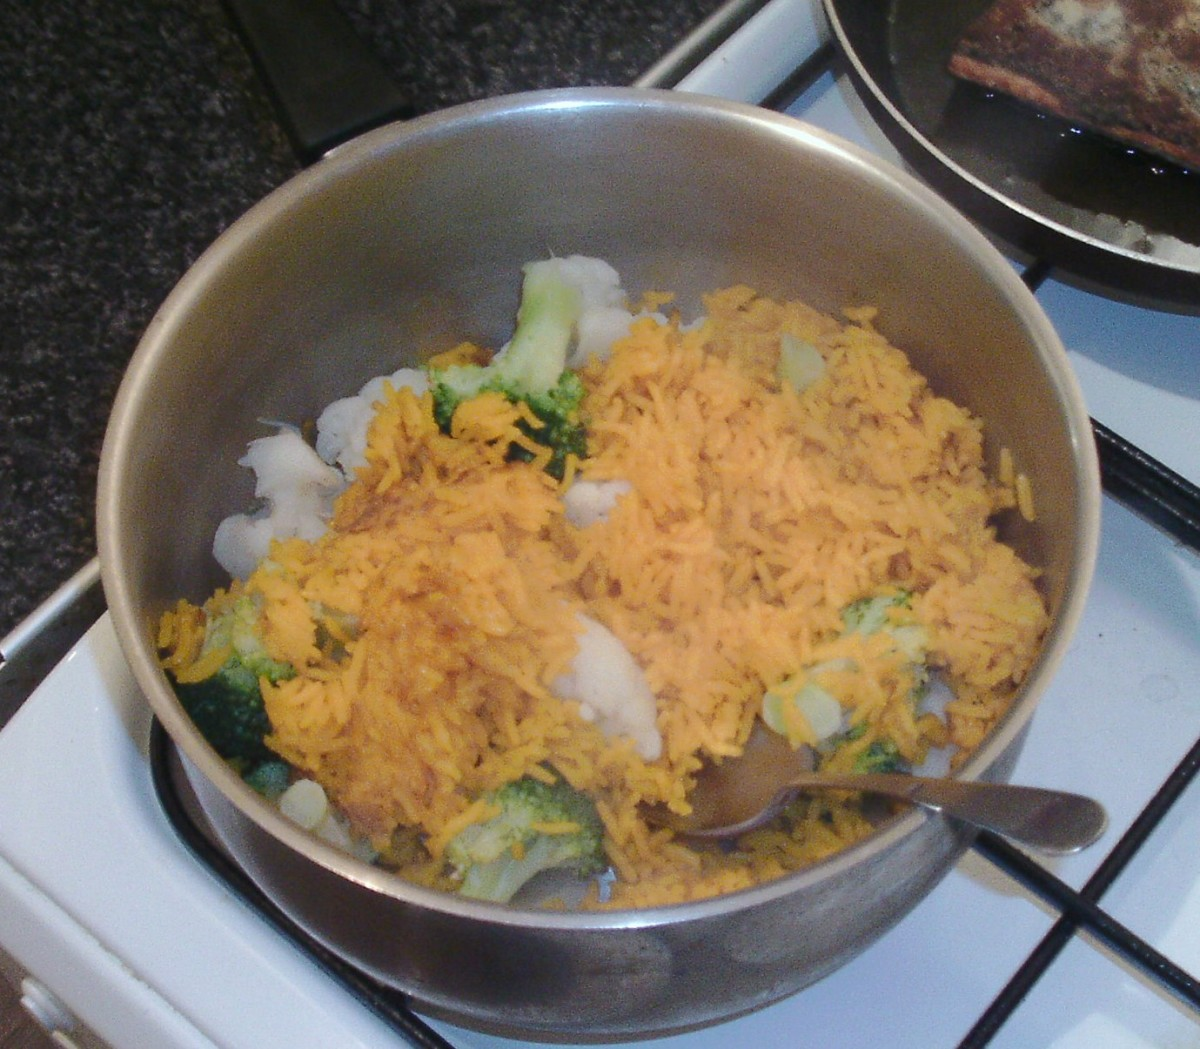 Broccoli and cauliflower are stirred in to rice